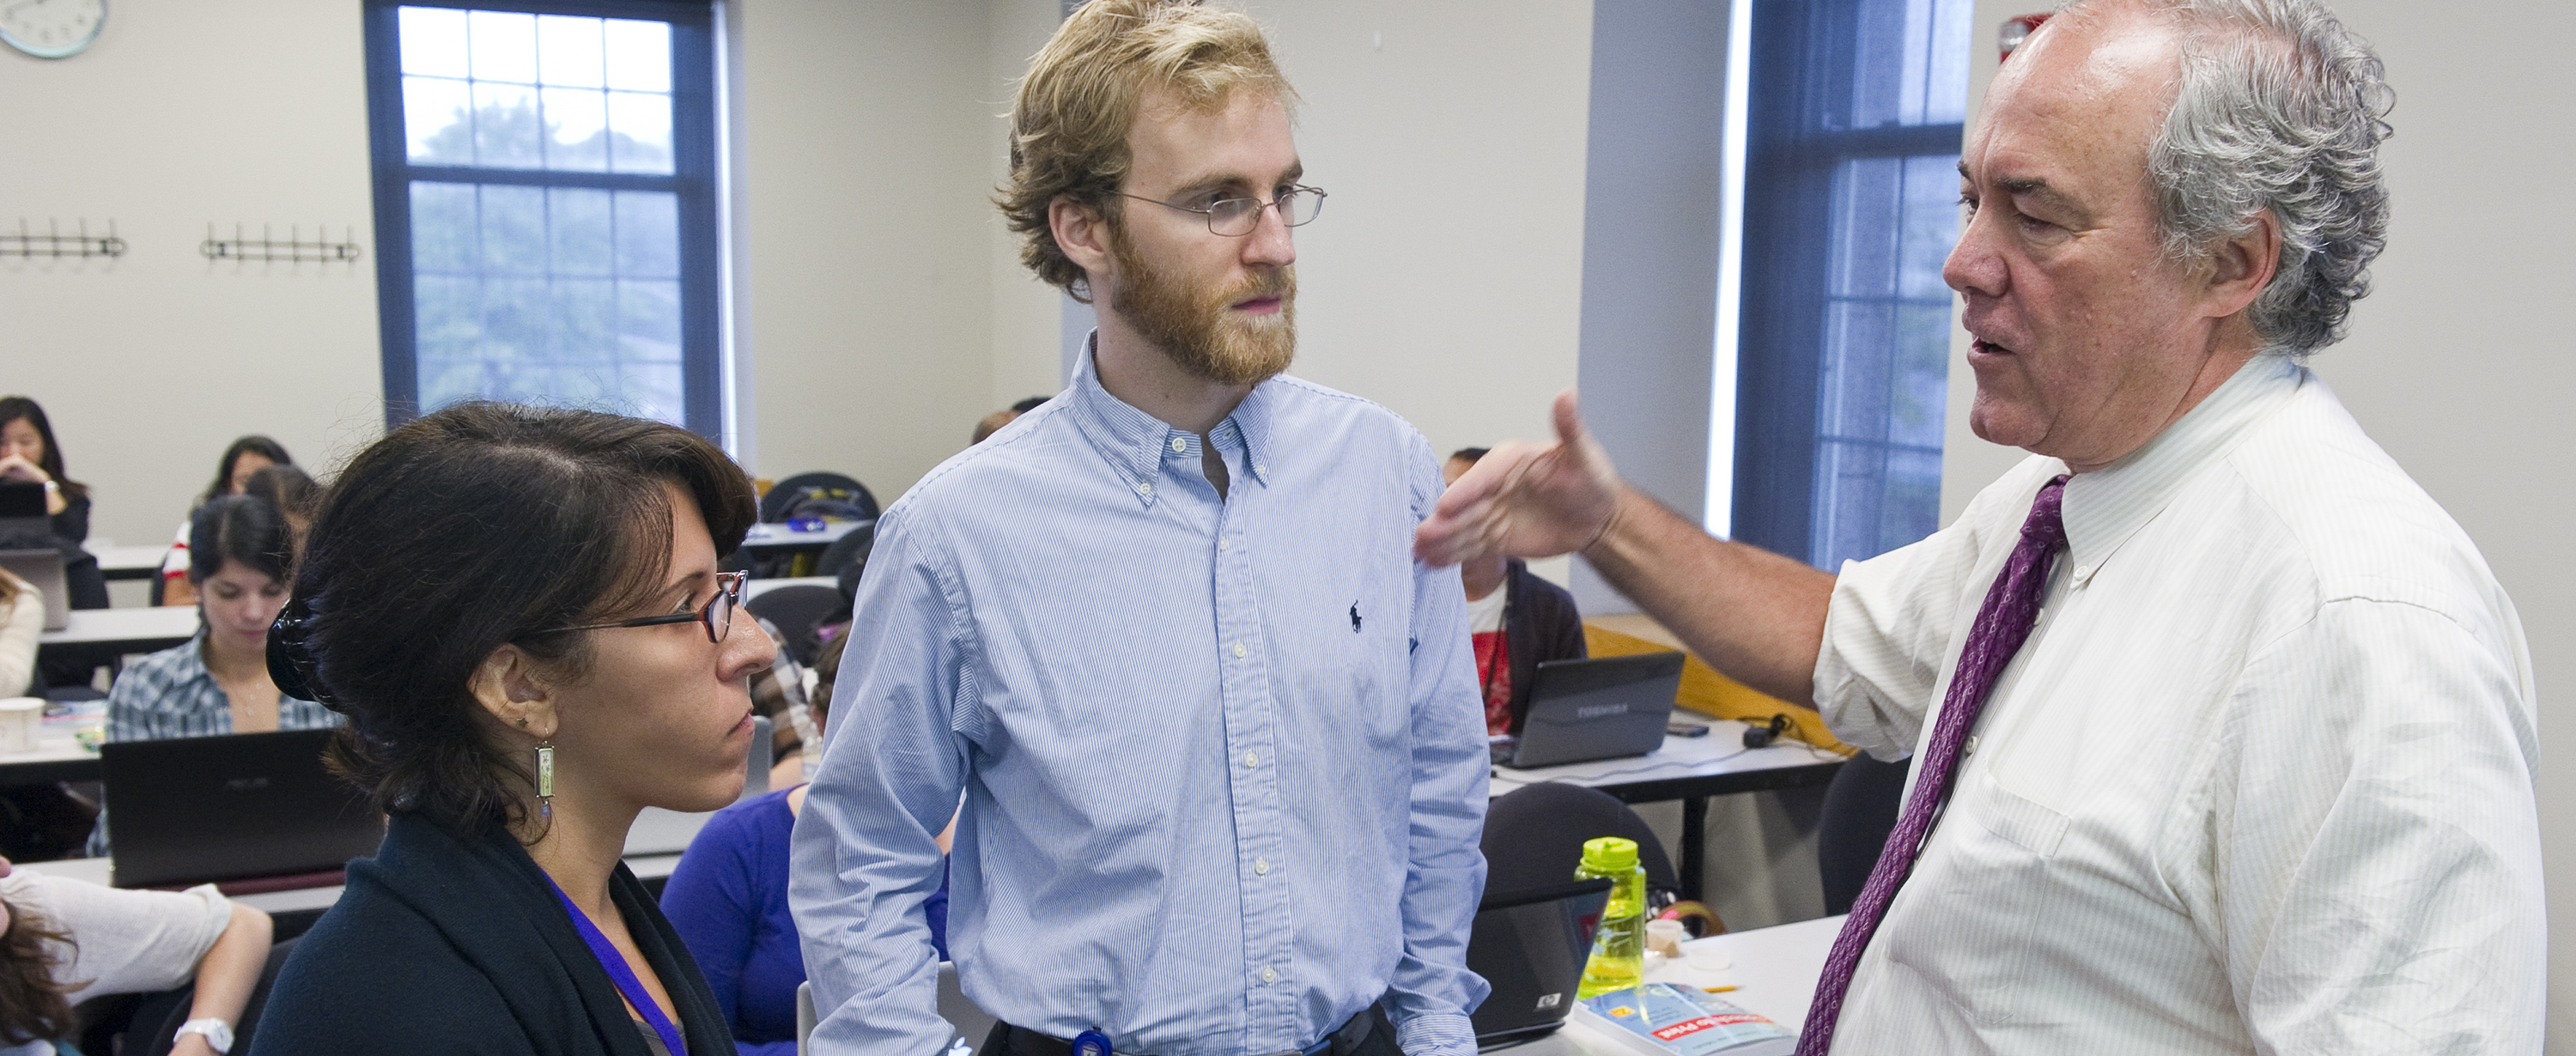 Dr. Charles Haynes talking with students